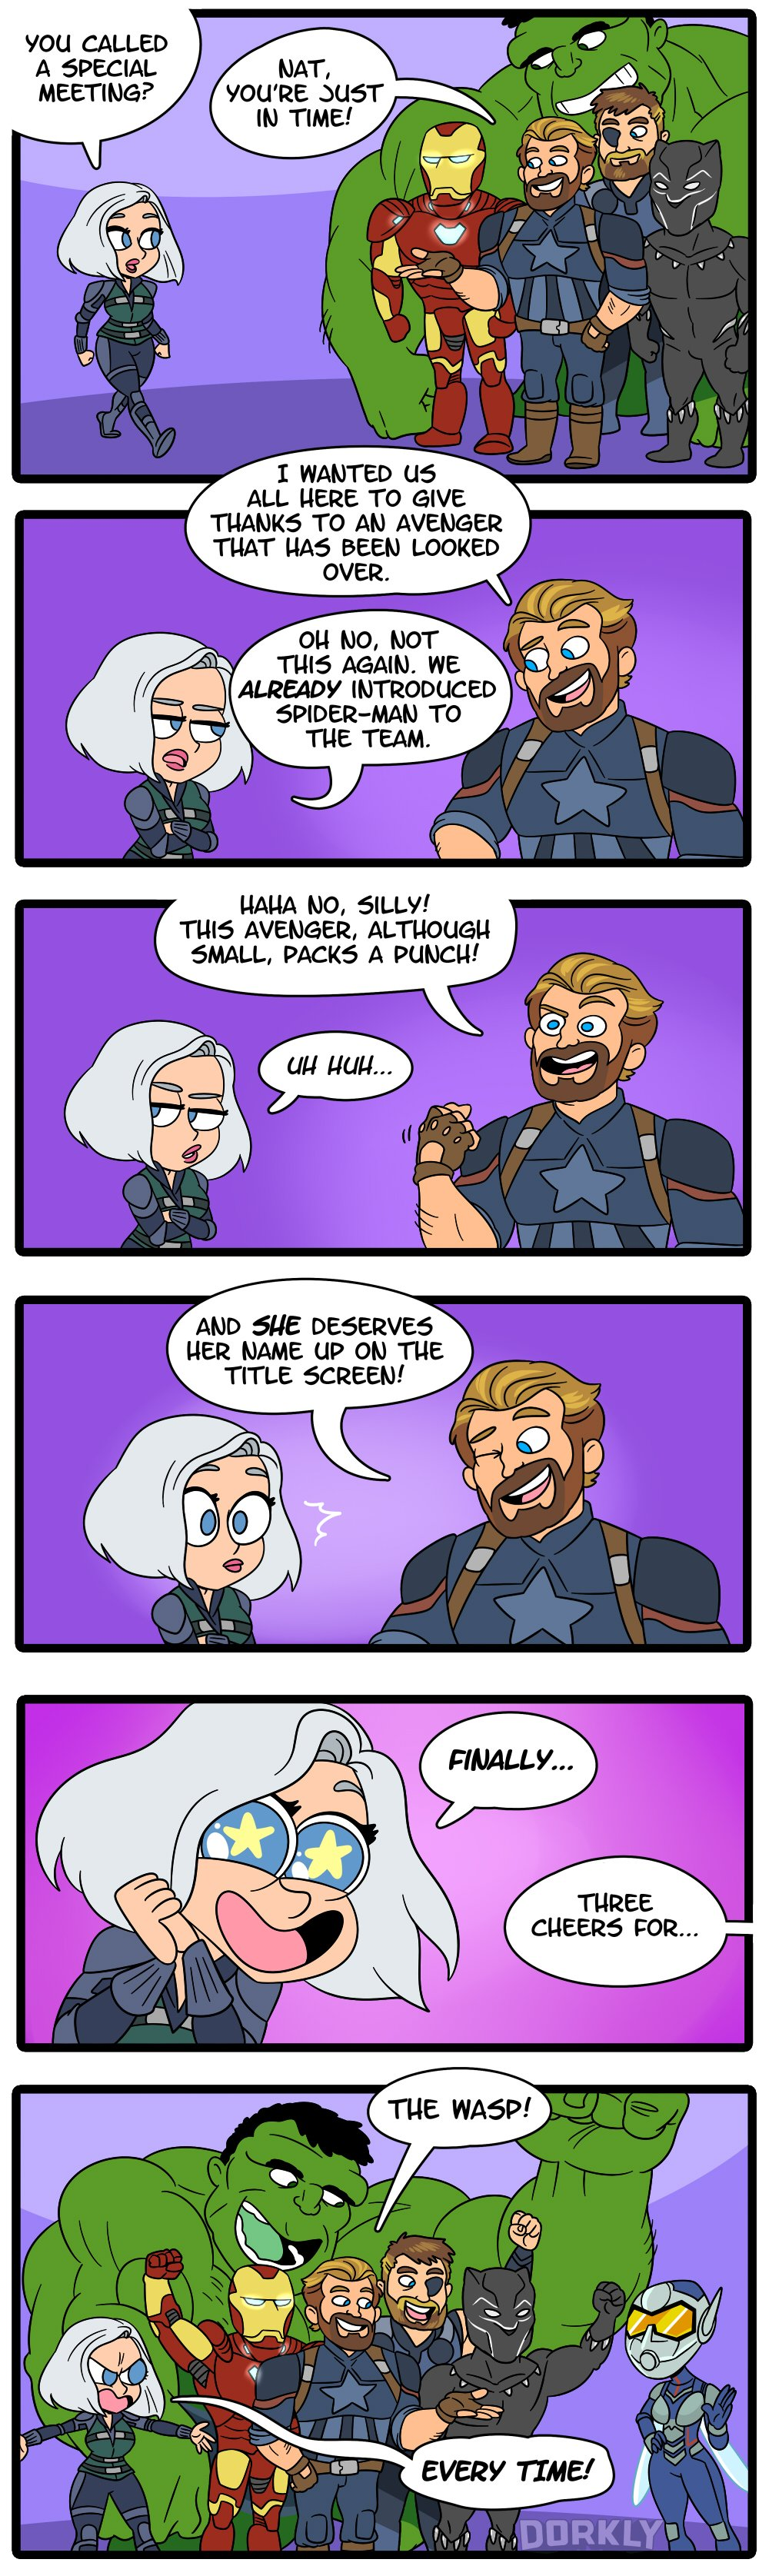 An Avenger Finally Gets The Recognition They Deserve